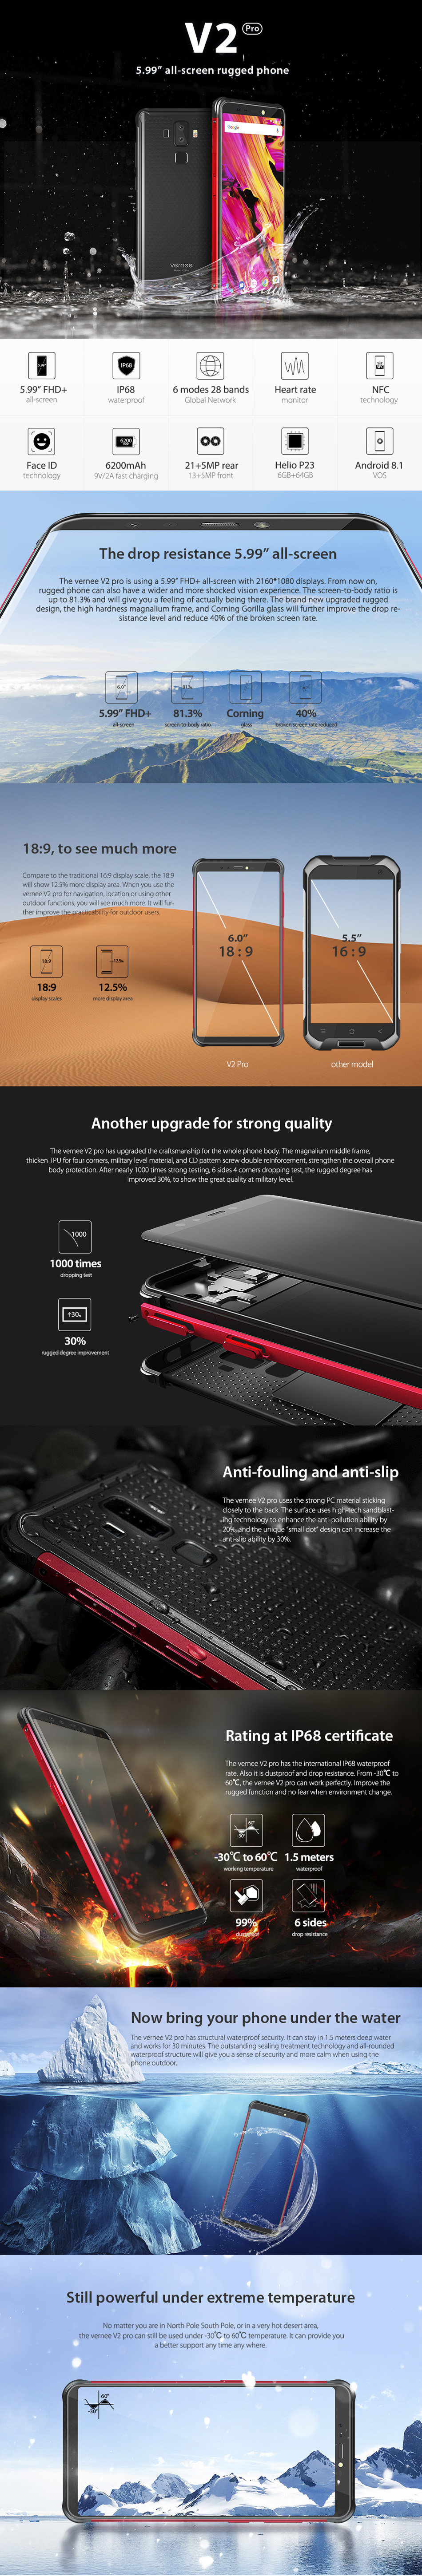 994a6c456 Vernee V2 Pro Global Bands 5.99 inch FHD+ Android 8.1 IP68 6GB RAM 64GB ROM  MT6763 4G Smartphone